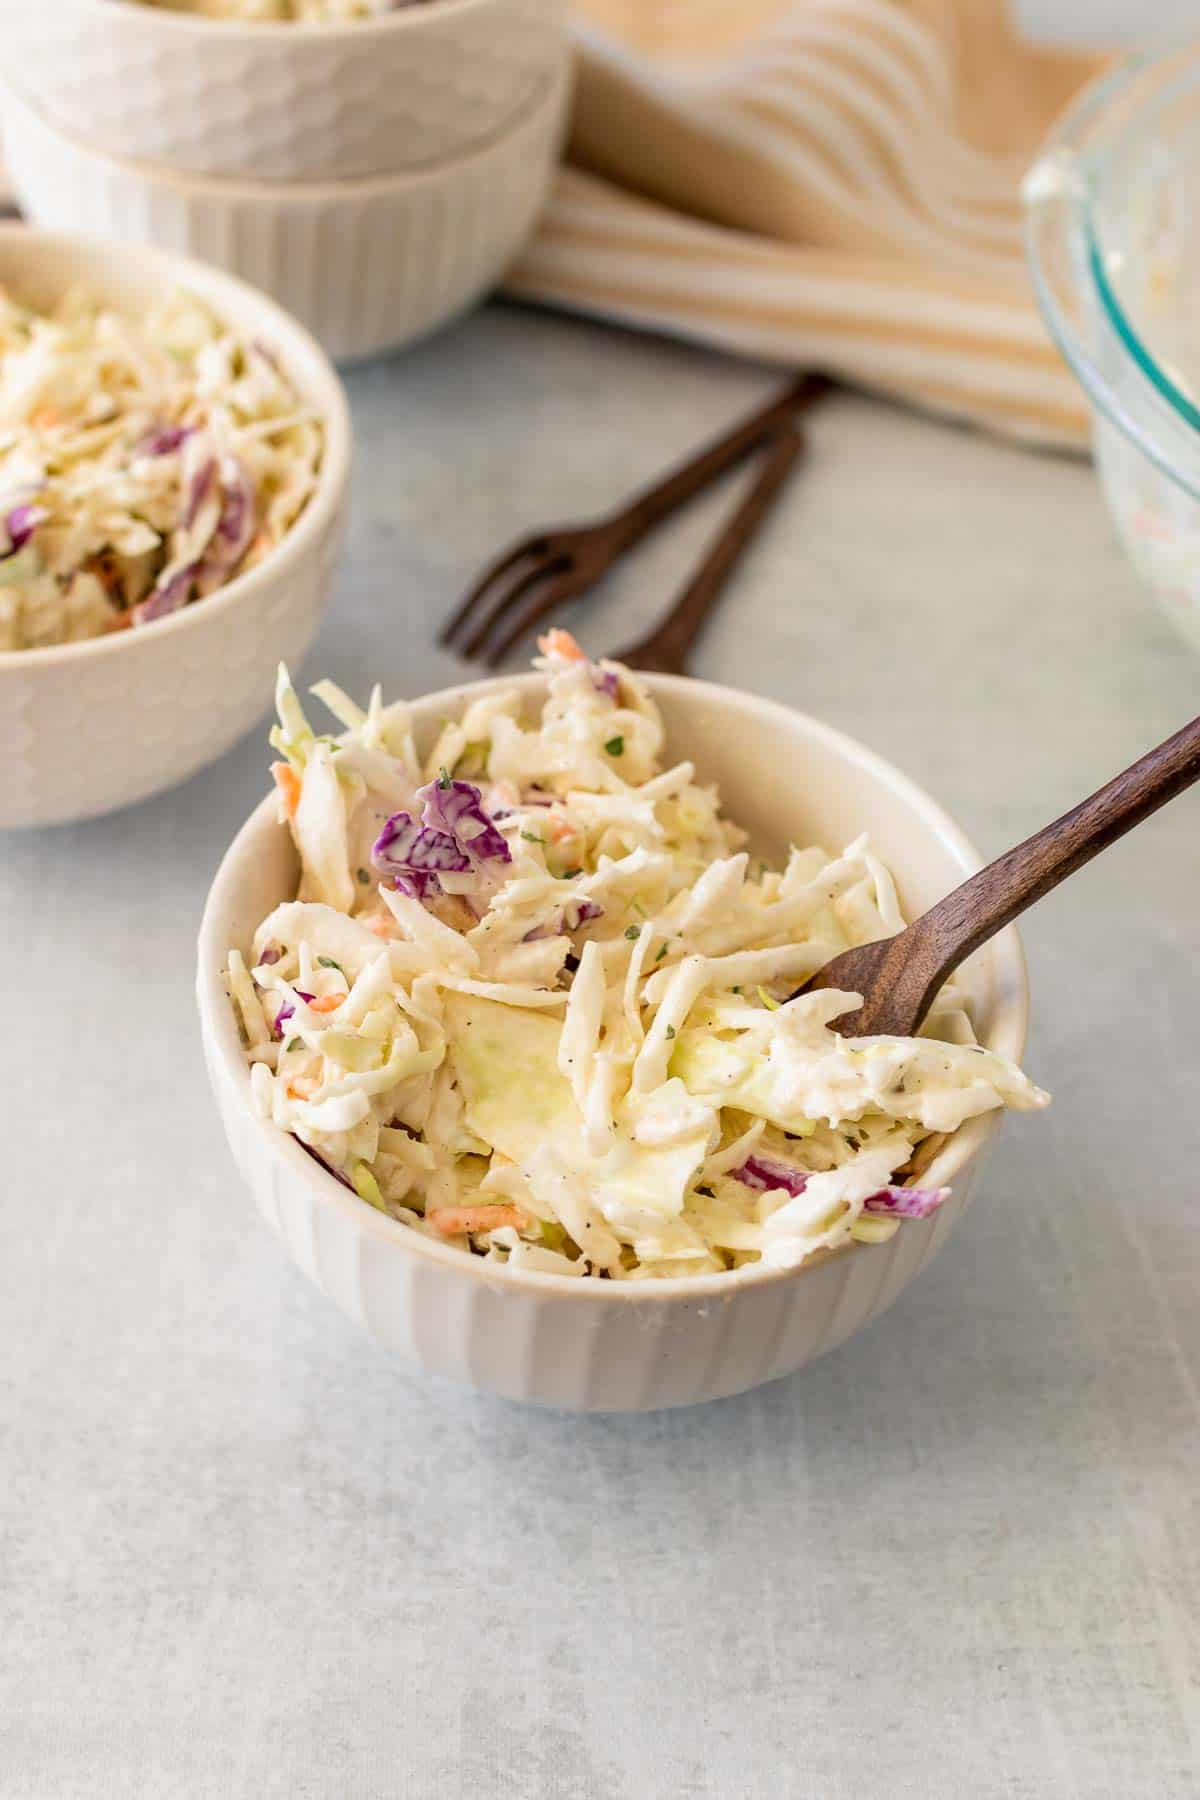 Coleslaw in a white bowl with a wooden fork